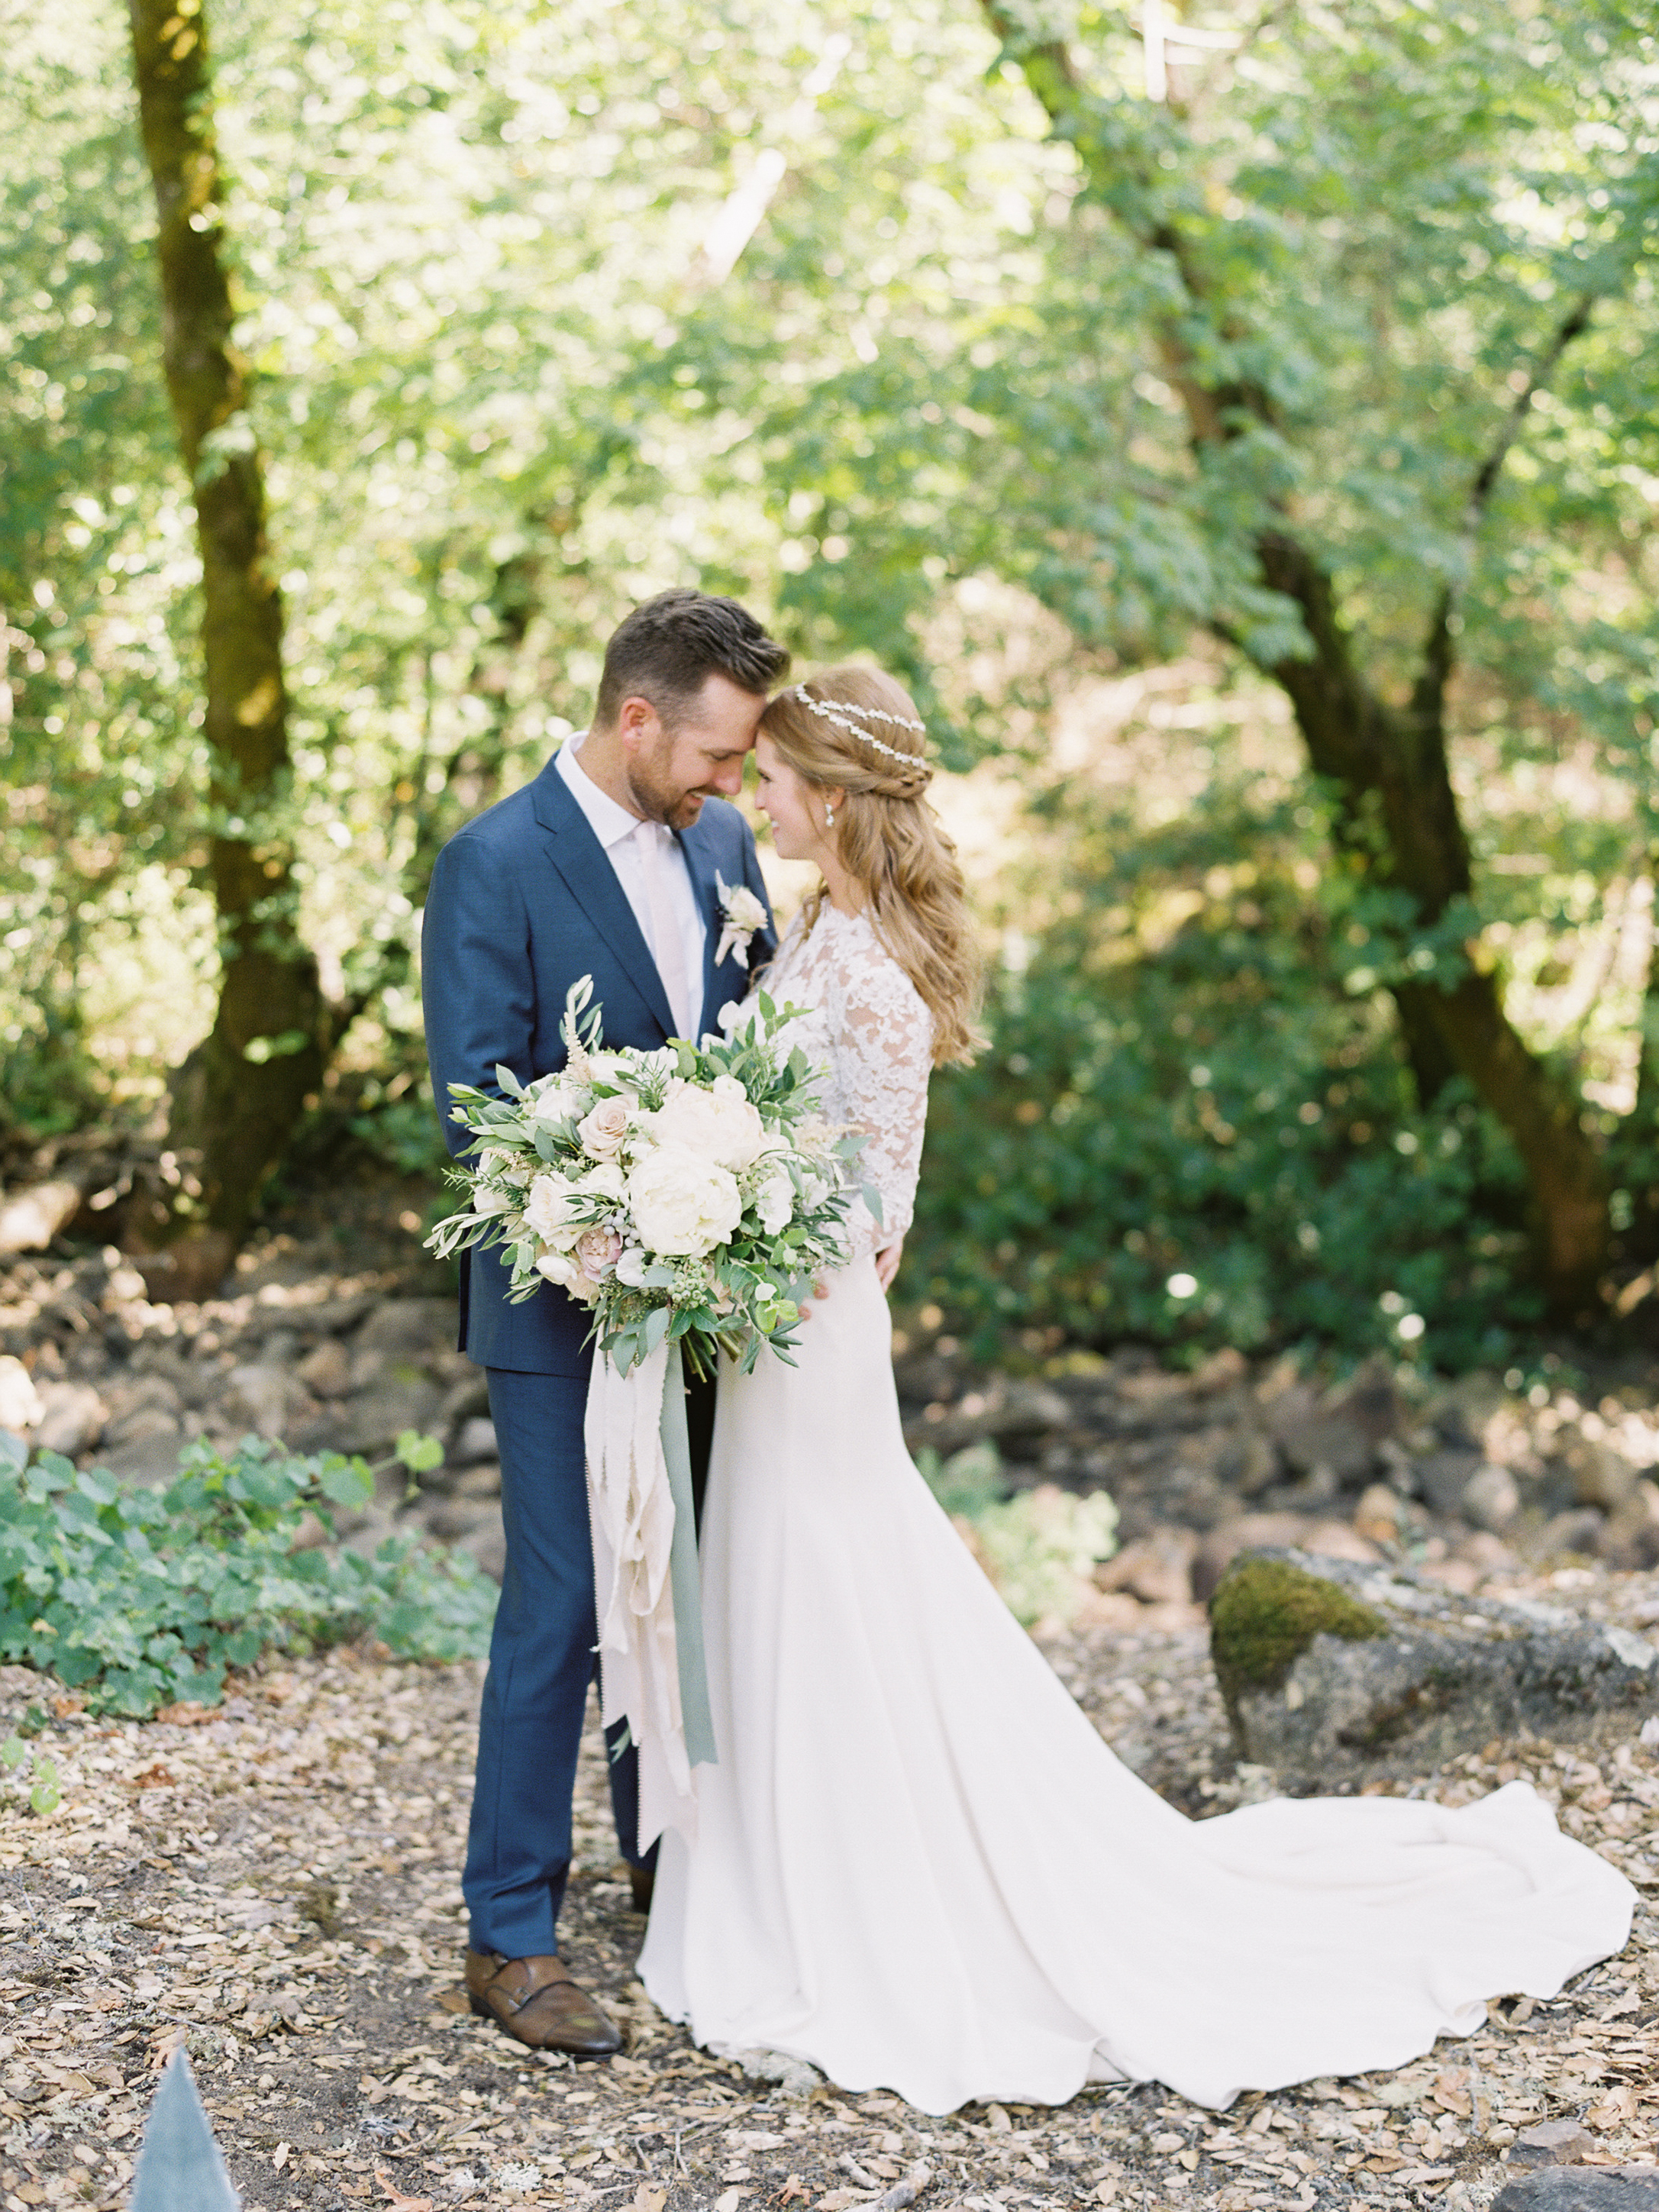 Napa Wedding Photographer - Meghan Mehan Photography _014.jpg